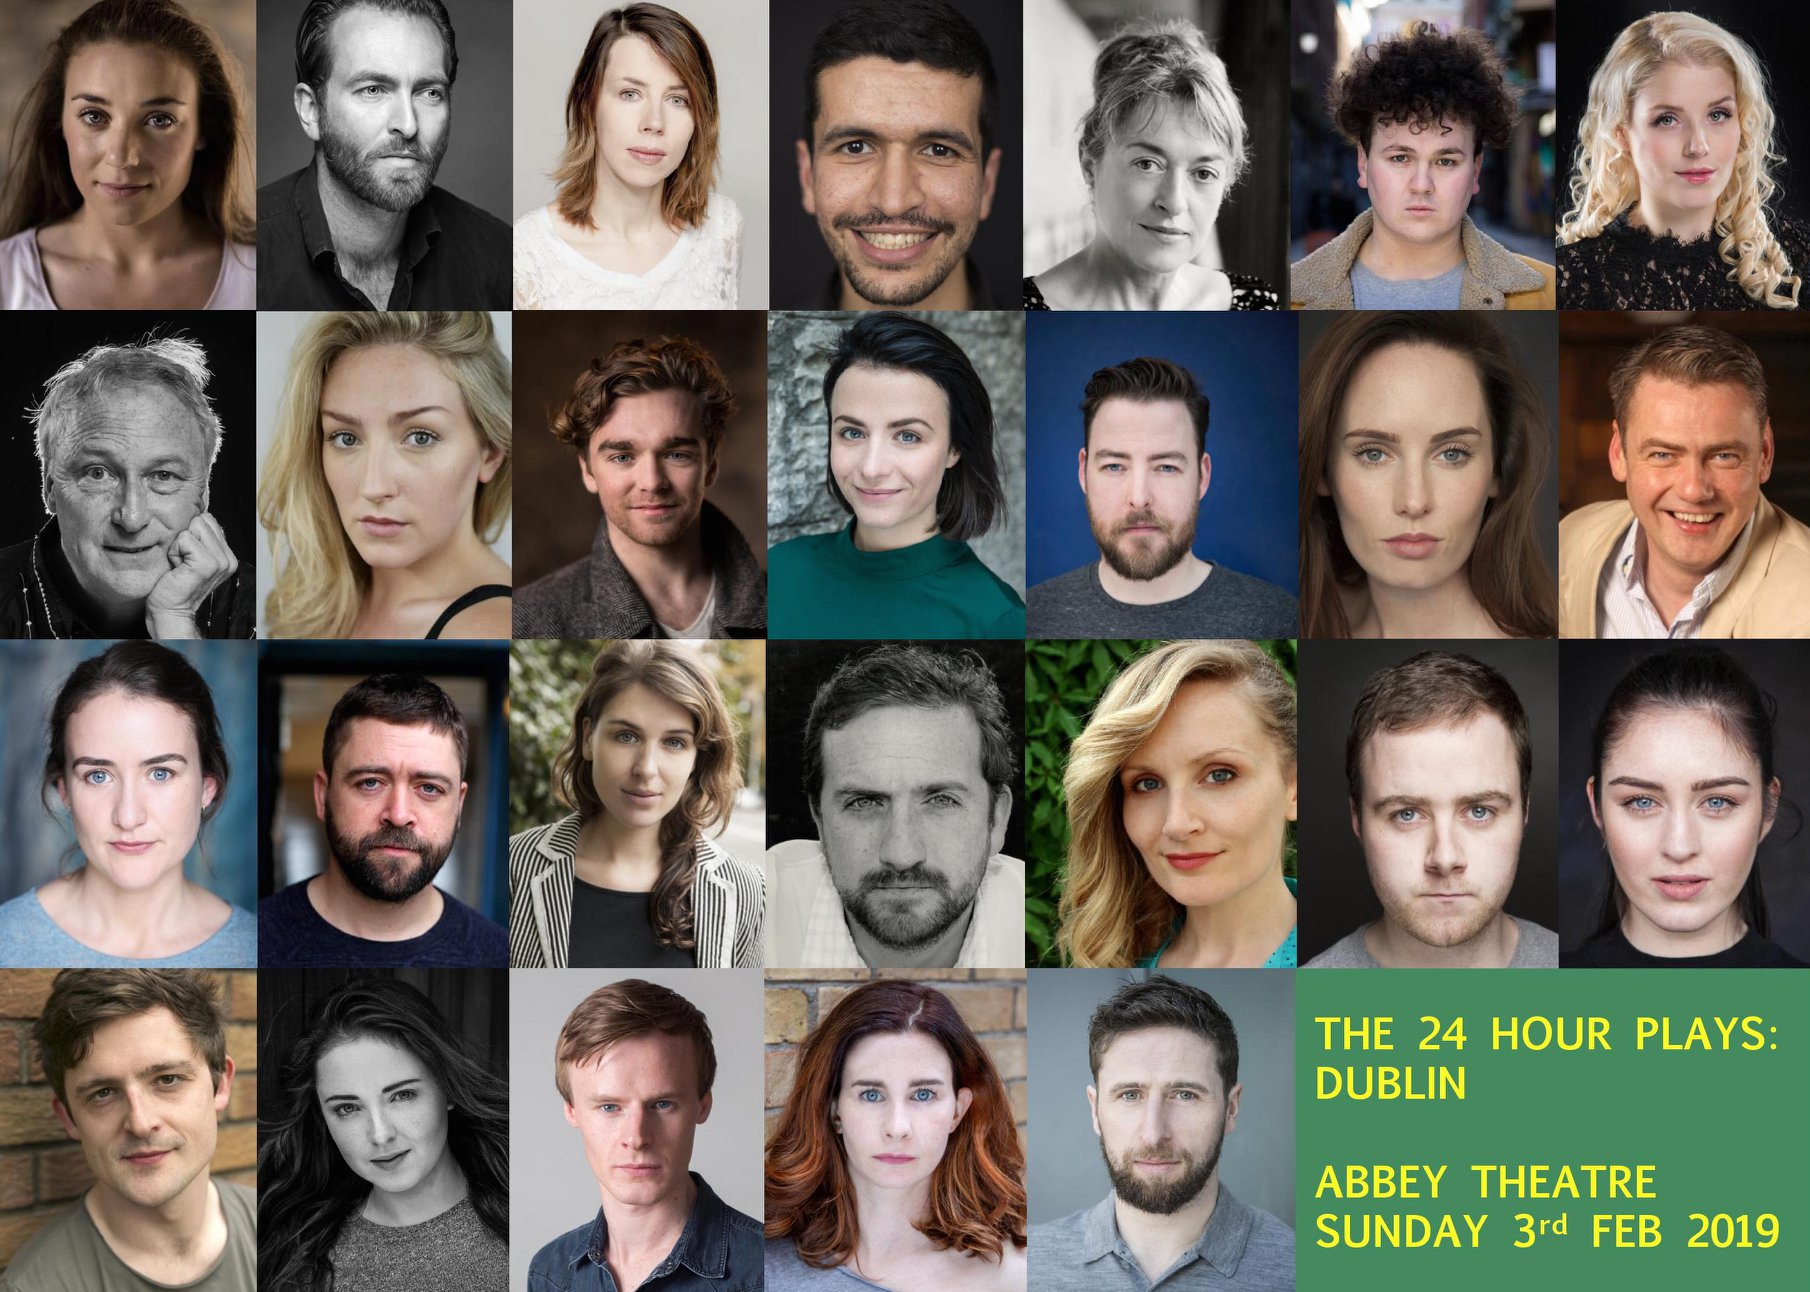 Catch Amy Feb 3 as part of The 24 Hour Plays: Dublin, in aid of Dublin Youth Theatre at The Abbey Theatre